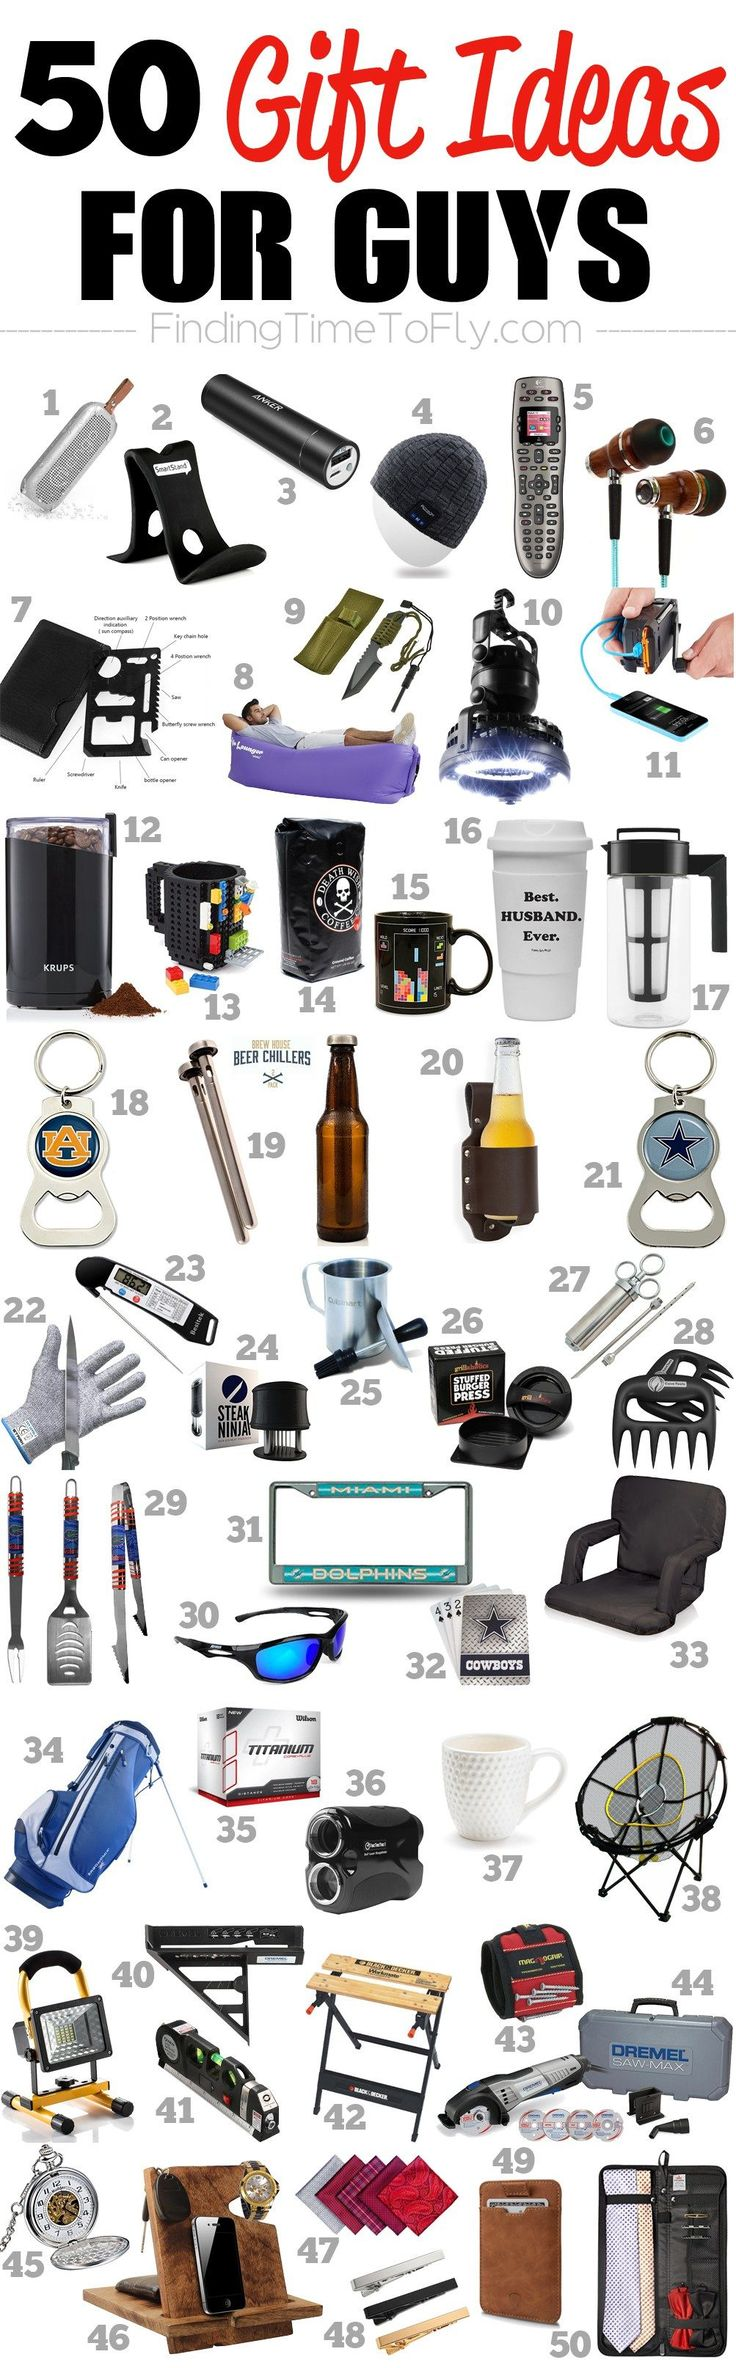 Best 25+ Gifts ideas for men ideas on Pinterest | Fun gifts for ...